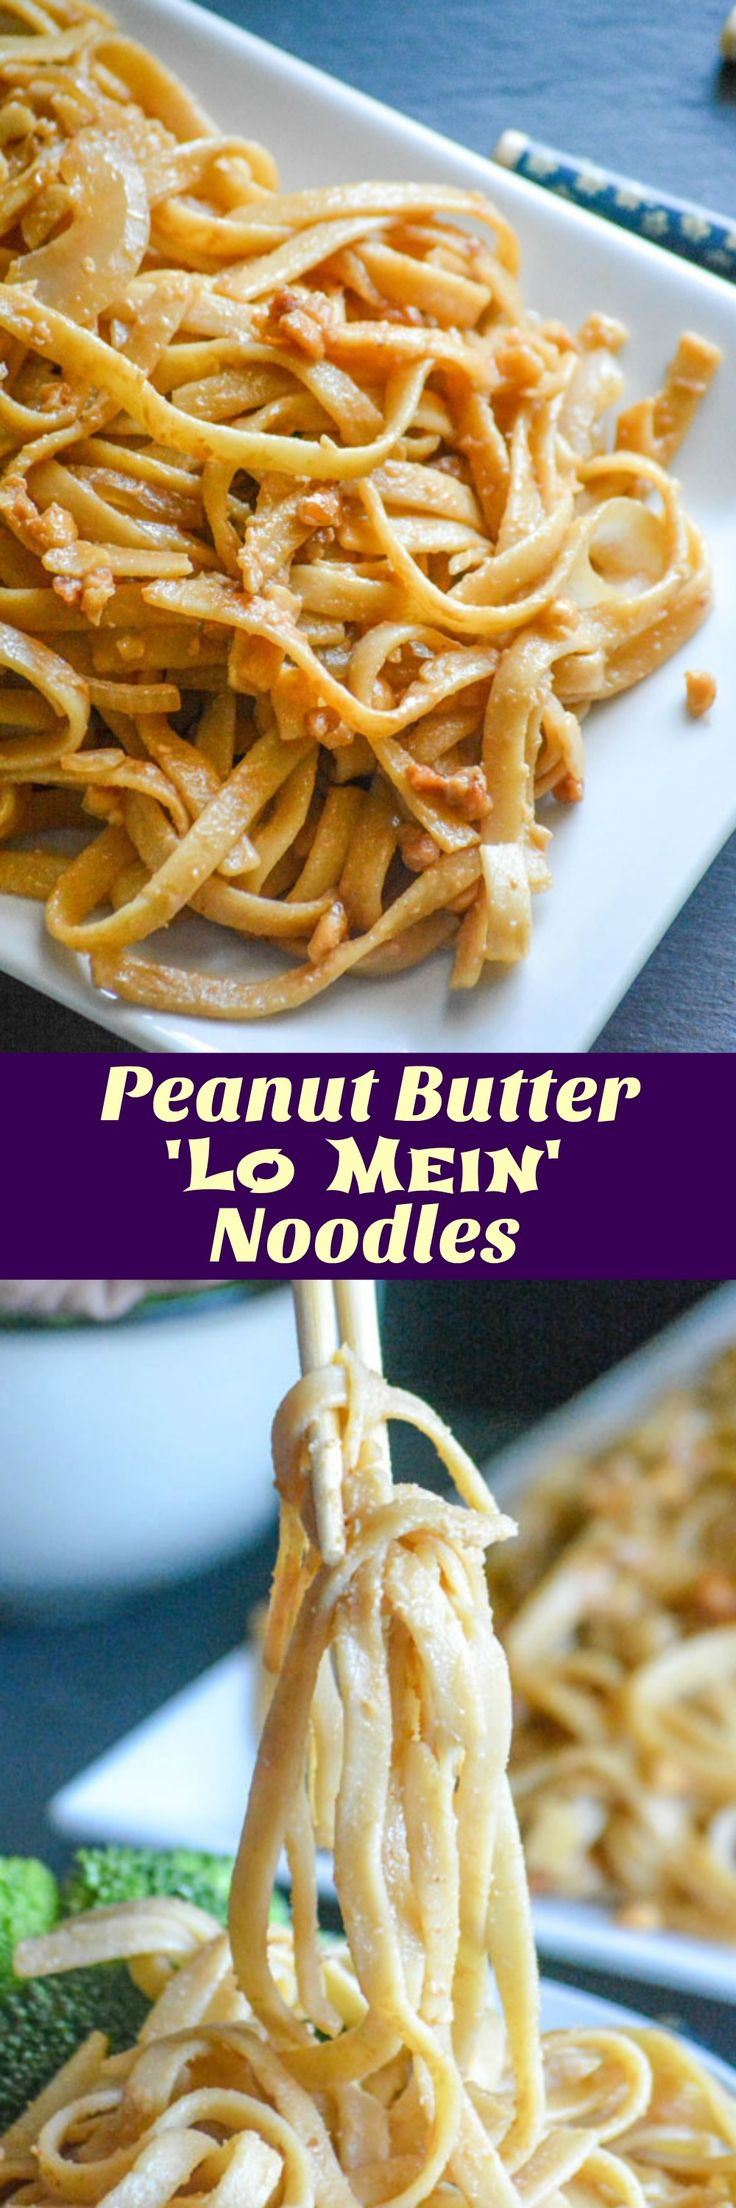 A quick & easy pasta dinner, don't shy away at this seemingly odd combination of pasta & peanut butter. These Asian Peanut Butter 'Lo Mein' Noodles are a fun food you can serve for lunch or dinner, that'll win the approval of both kids and adults.